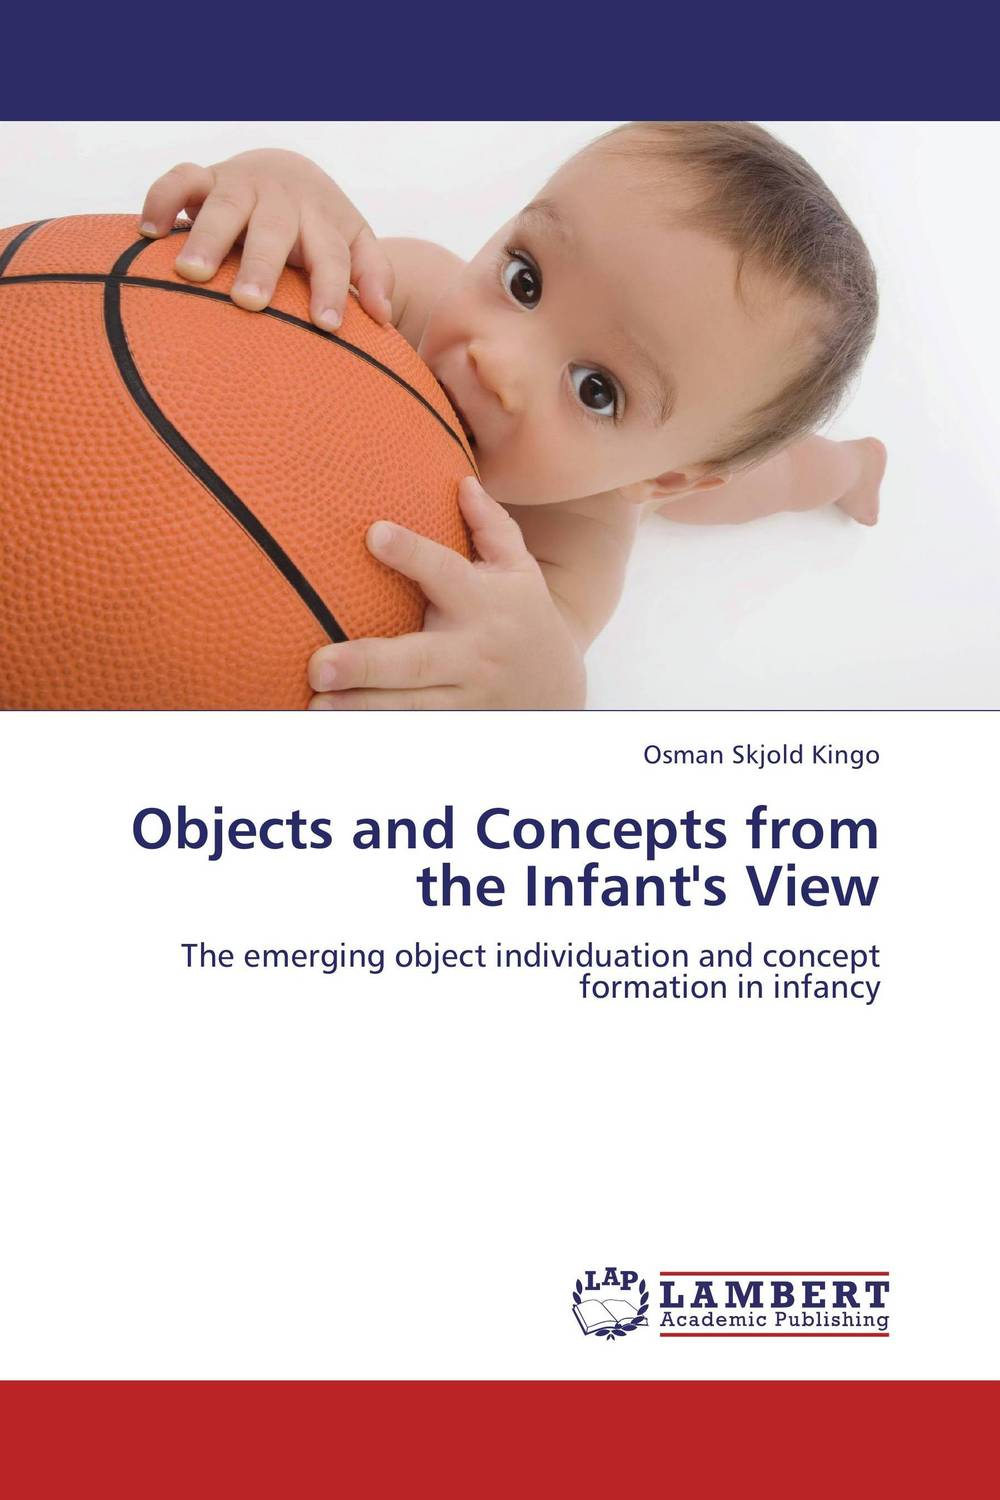 все цены на Objects and Concepts from the Infant's View